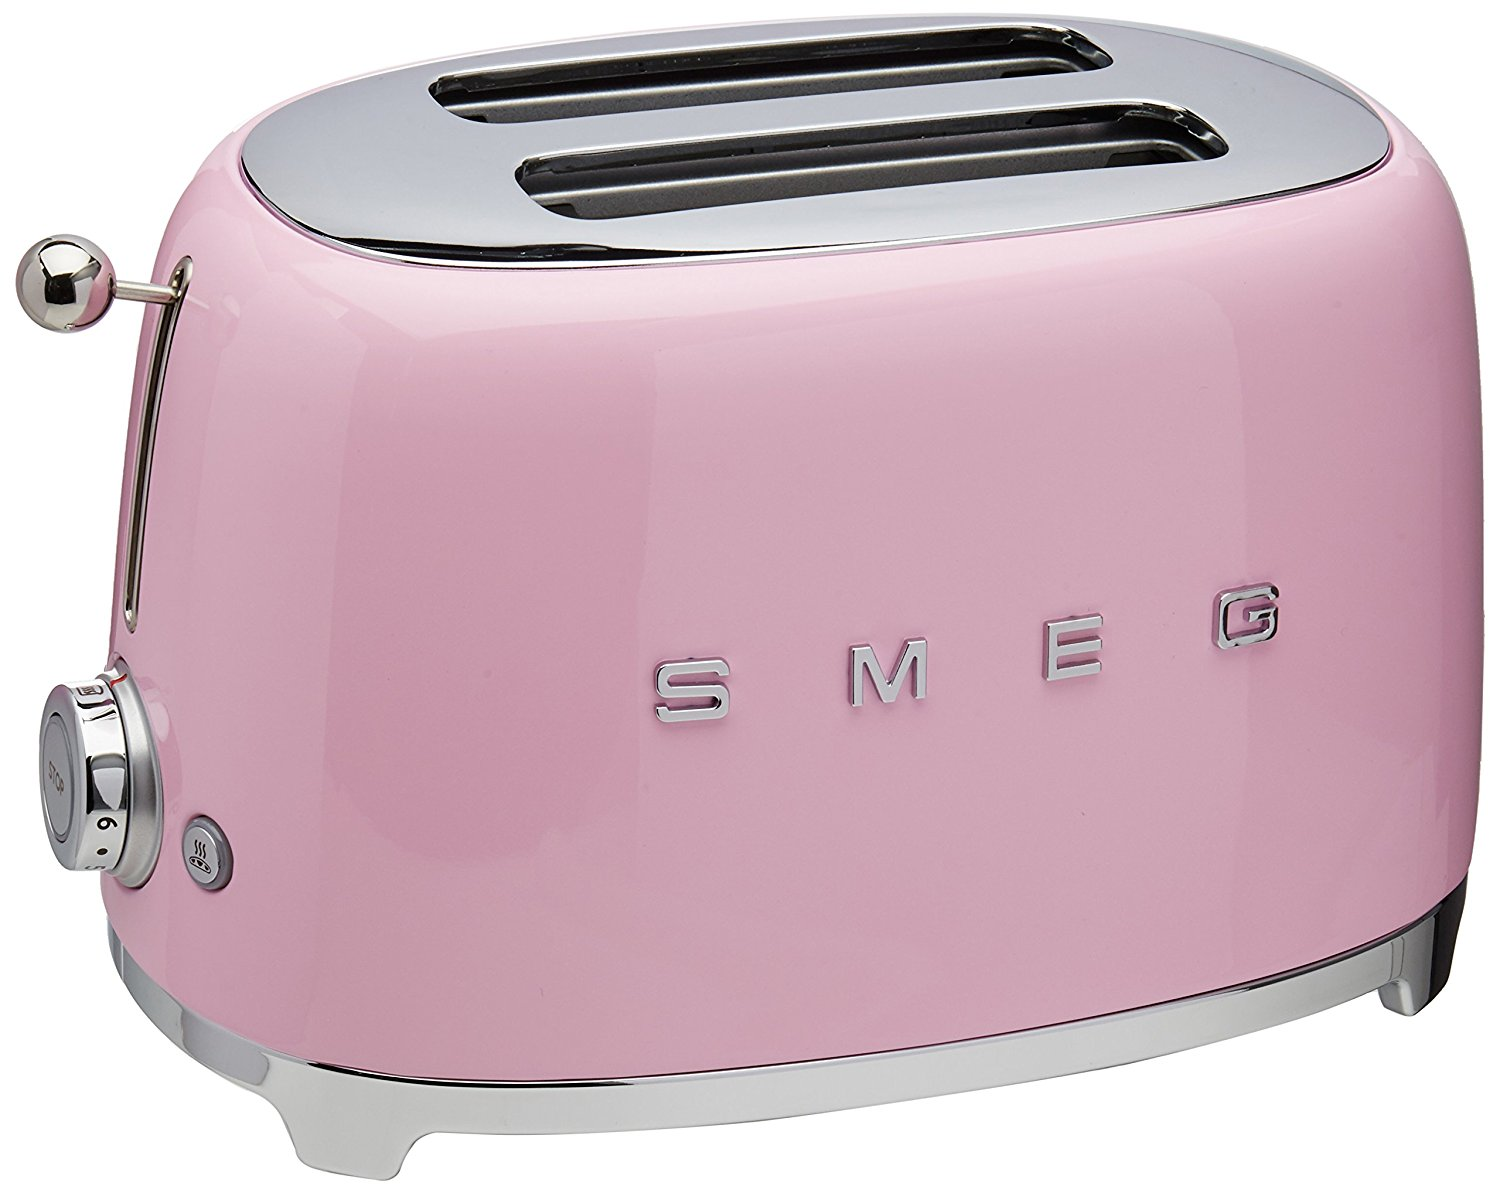 SMEG makes the pink appliances, but why not start out with just this pink toaster!